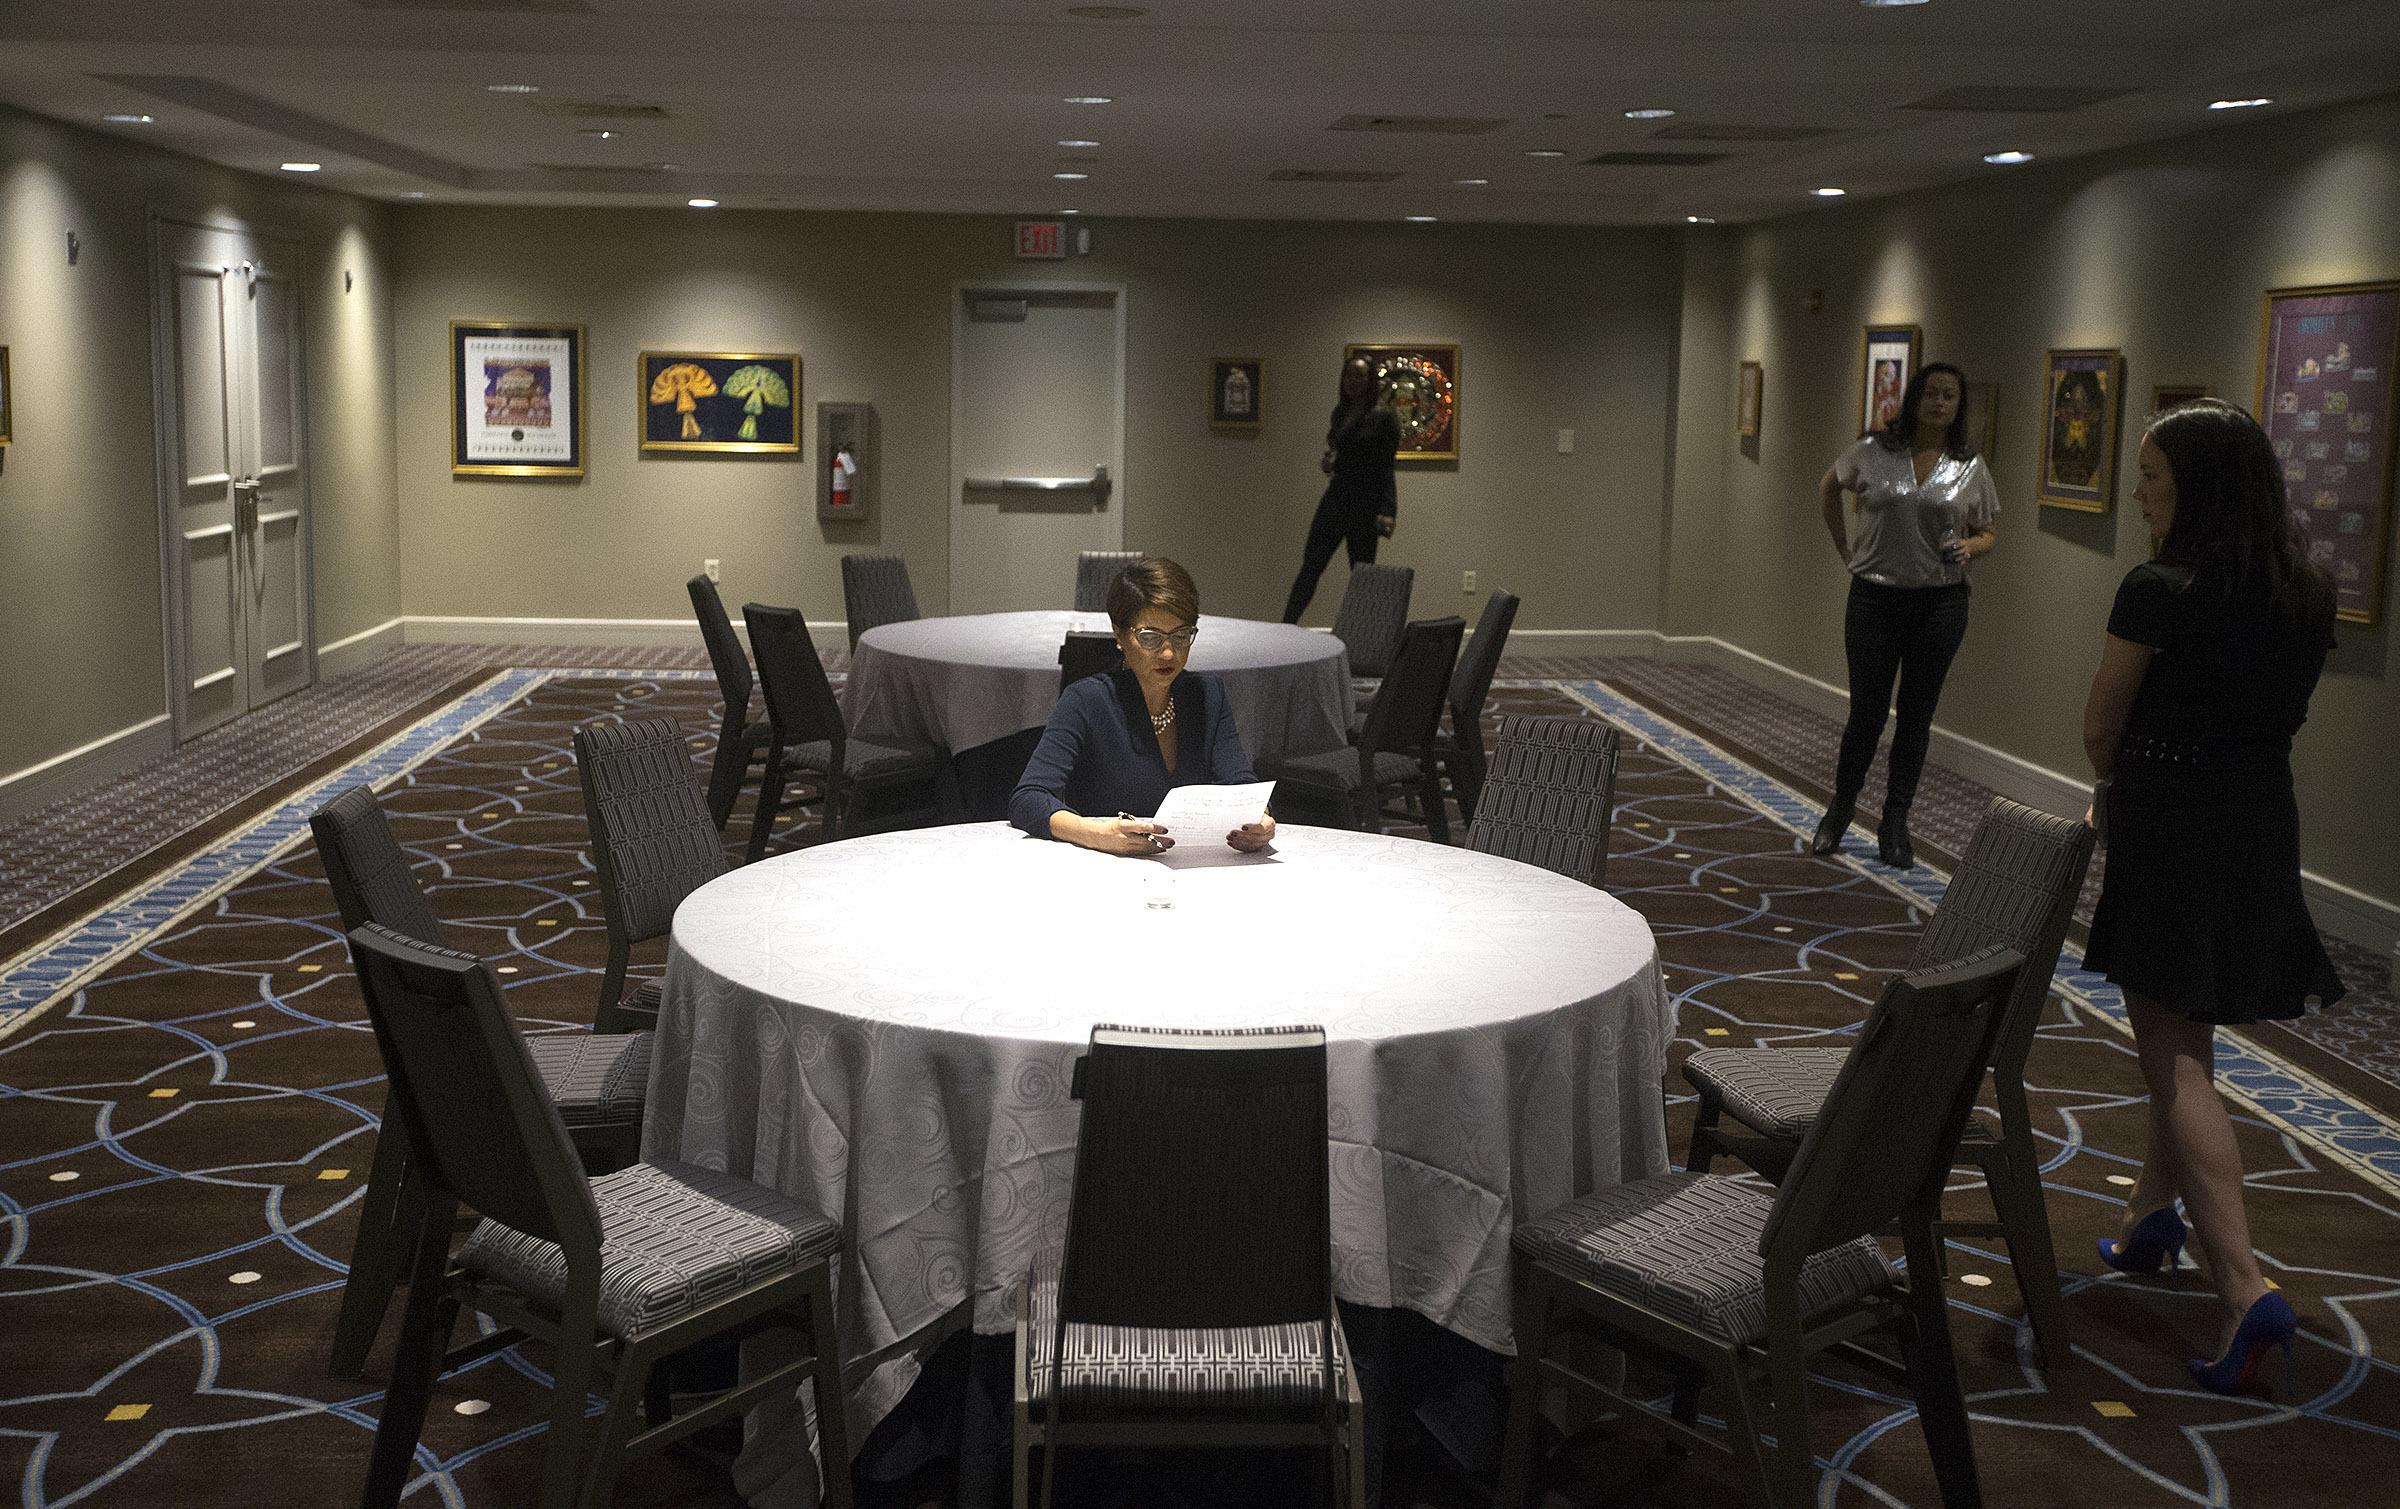 "Former municipal Judge Desiree Charbonnet looks over notes before she thanks her supporters as she concedes to LaToya Cantrell in the New Orleans mayoral race at the Sheraton Hotel in New Orleans, Saturday, Nov. 18, 2017. ""I do not regret one moment of anything about this campaign,"" Charbonnet said. The two women led a field of 18 in an October general election to win runoff spots. (David Grunfeld/NOLA.com The Times-Picayune via AP)"